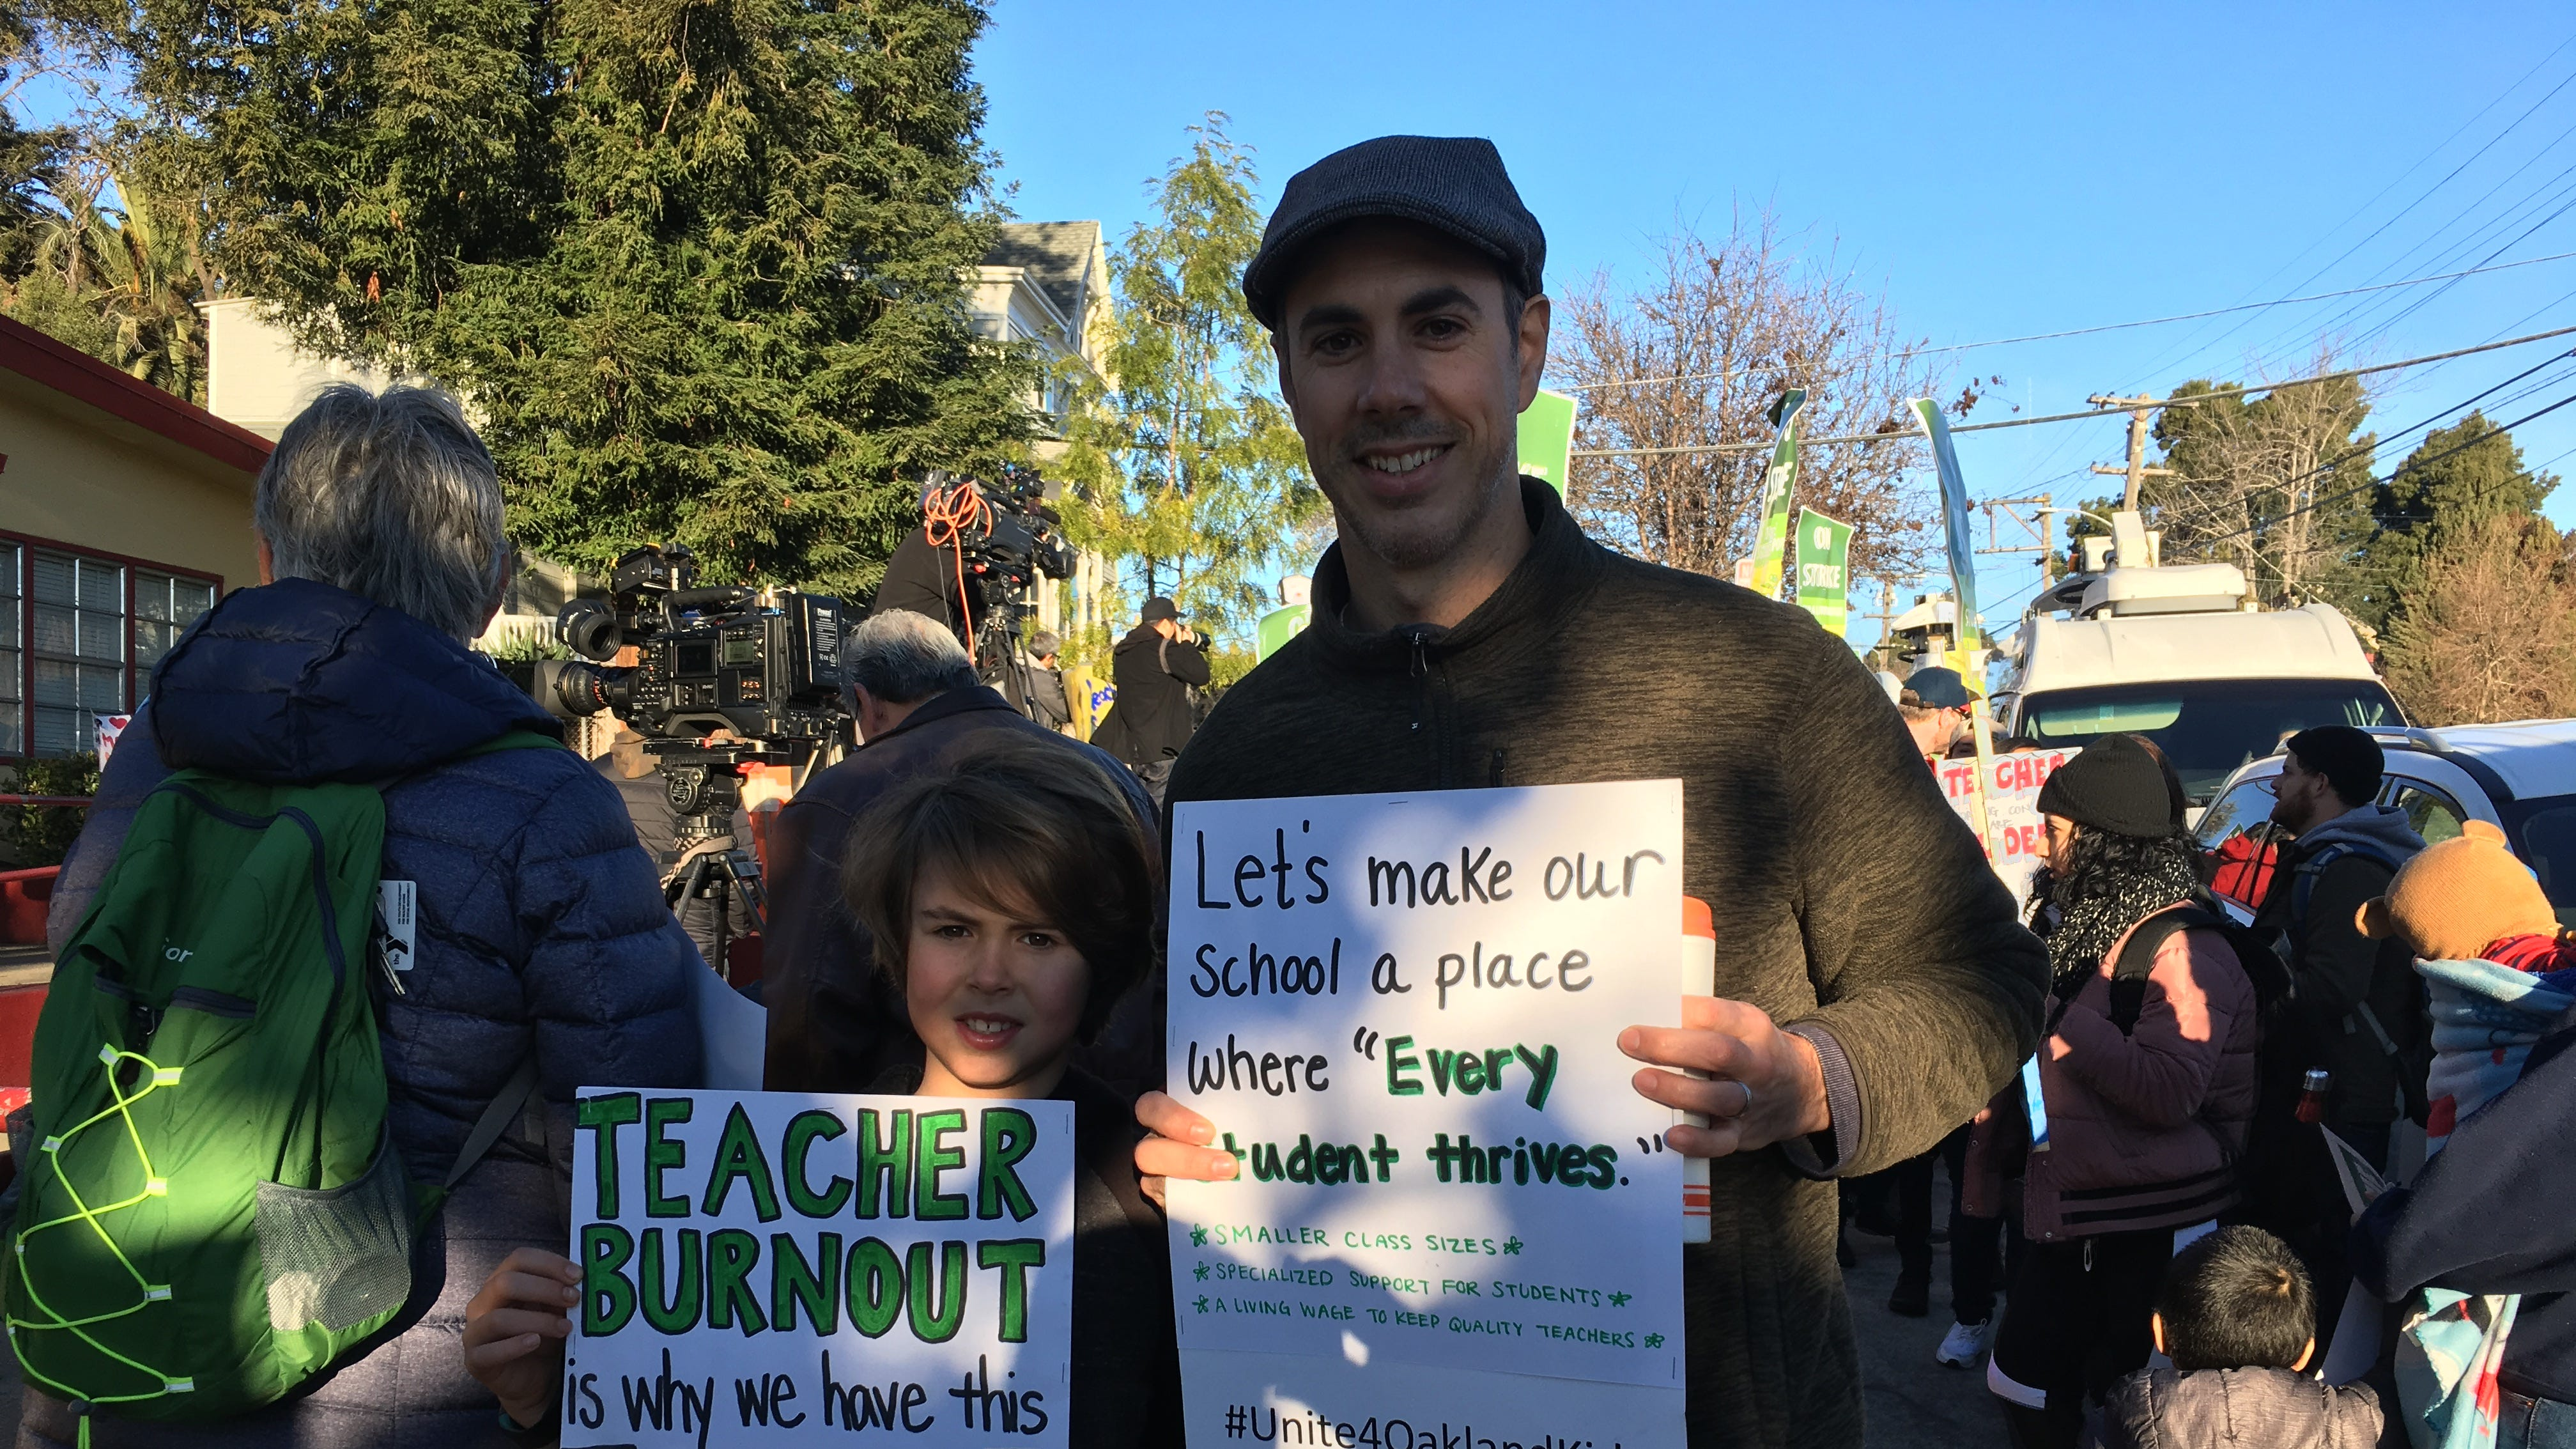 Patrick Vaughn and his son Whitworth, a third grader , rally in Oakland, Calif., on Feb. 21, 2019.